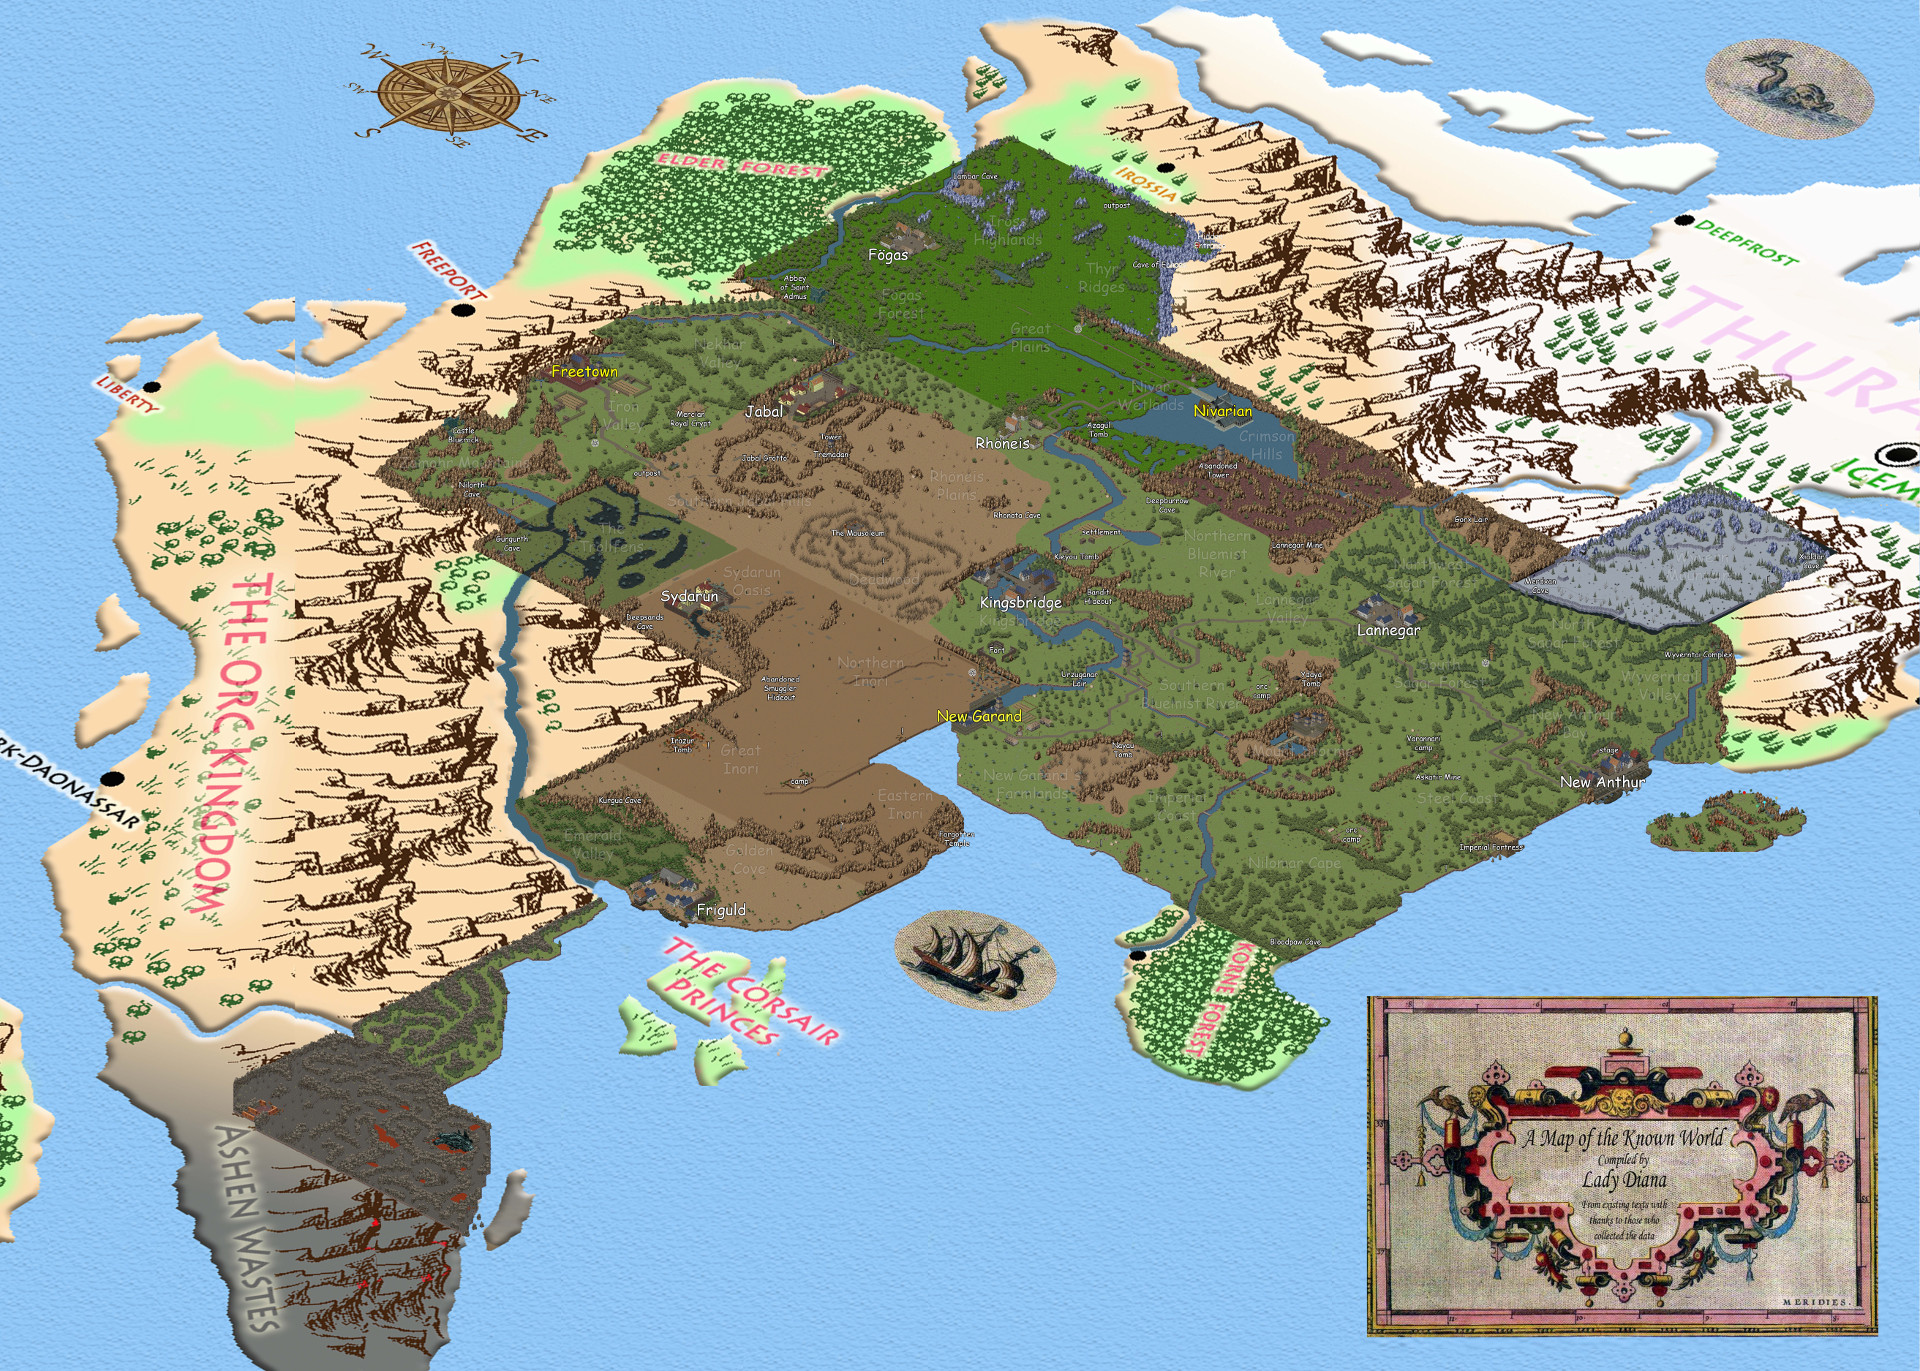 Filedetailed world mapg exiled kingdoms wiki filedetailed world mapg gumiabroncs Gallery